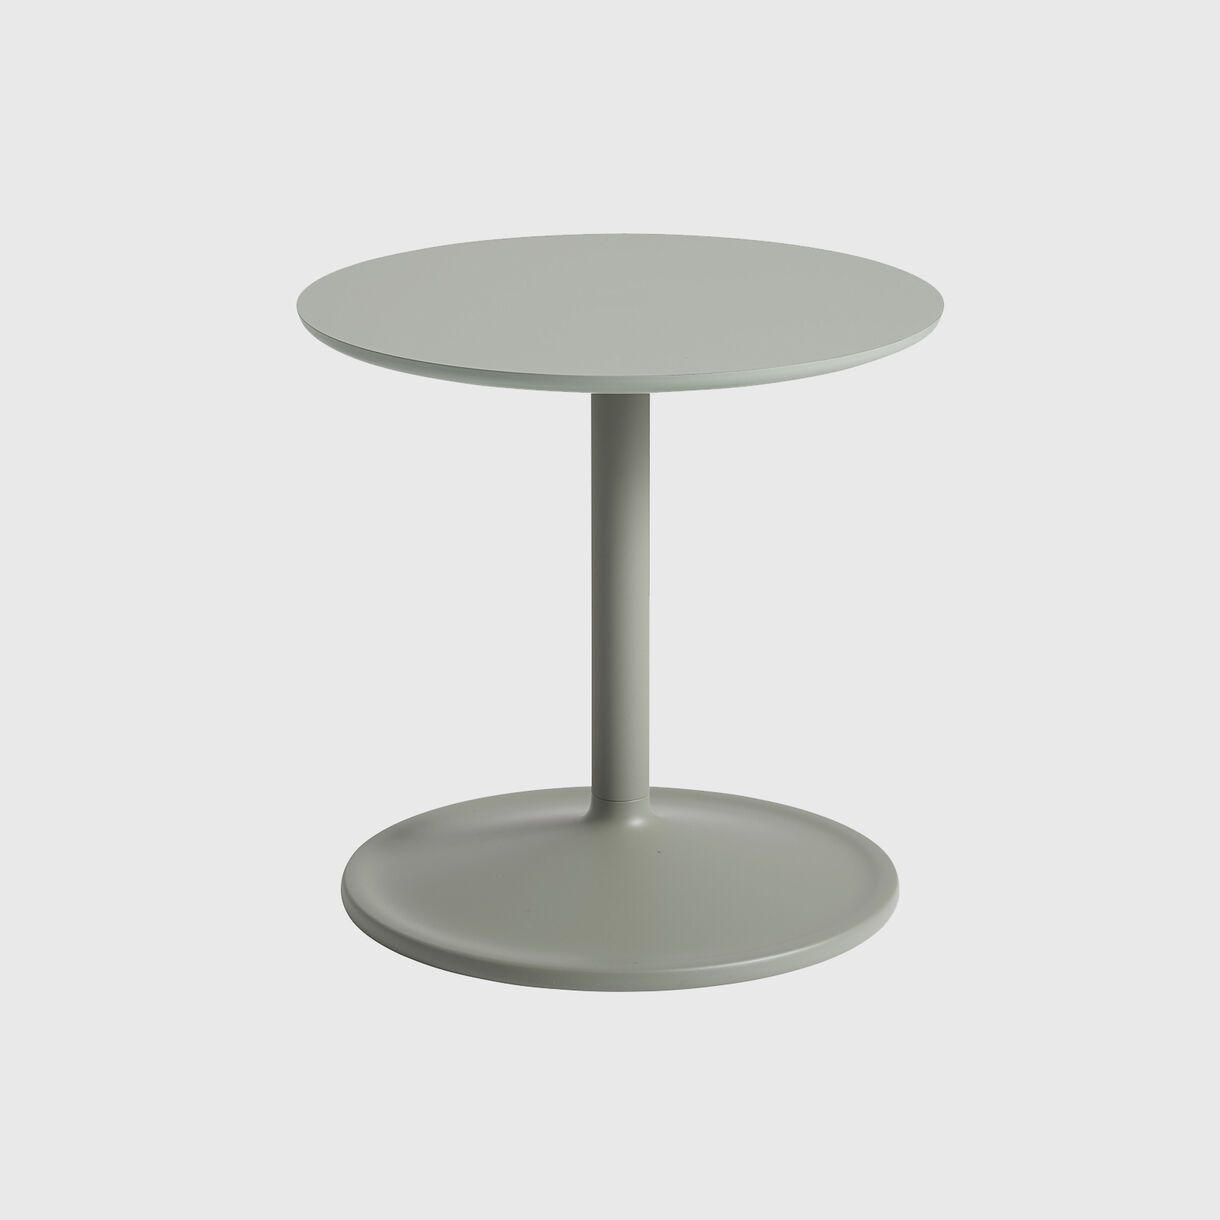 Soft Side Table, 41 x 40, Dusty Green